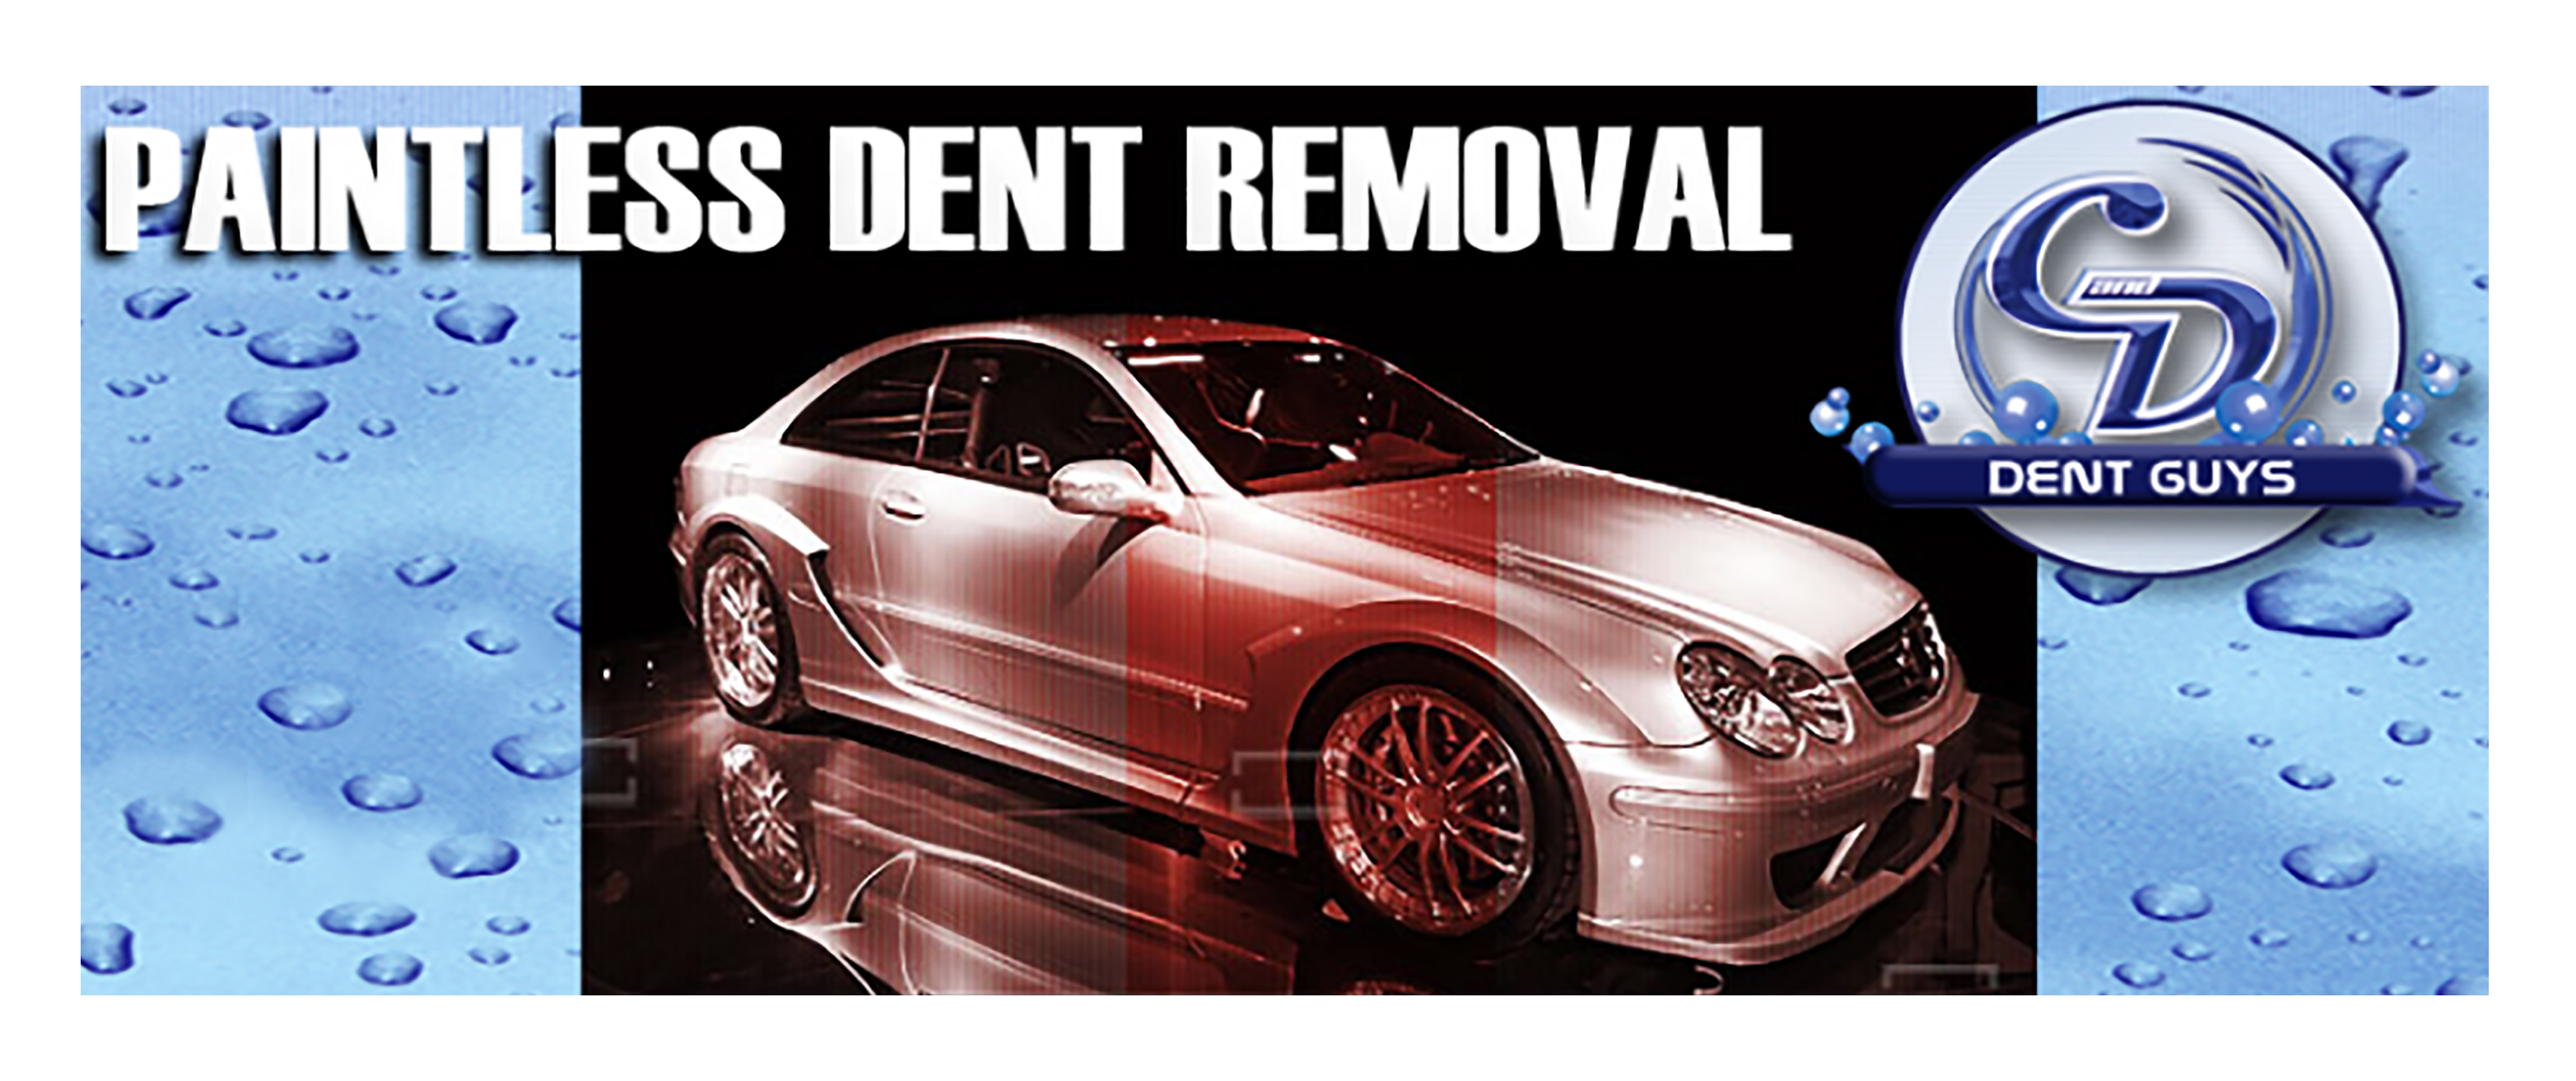 A silver Mercedes Benz sedan with the words Paintless Dent Removal above it and the C & D Dent Guys logo to its right.